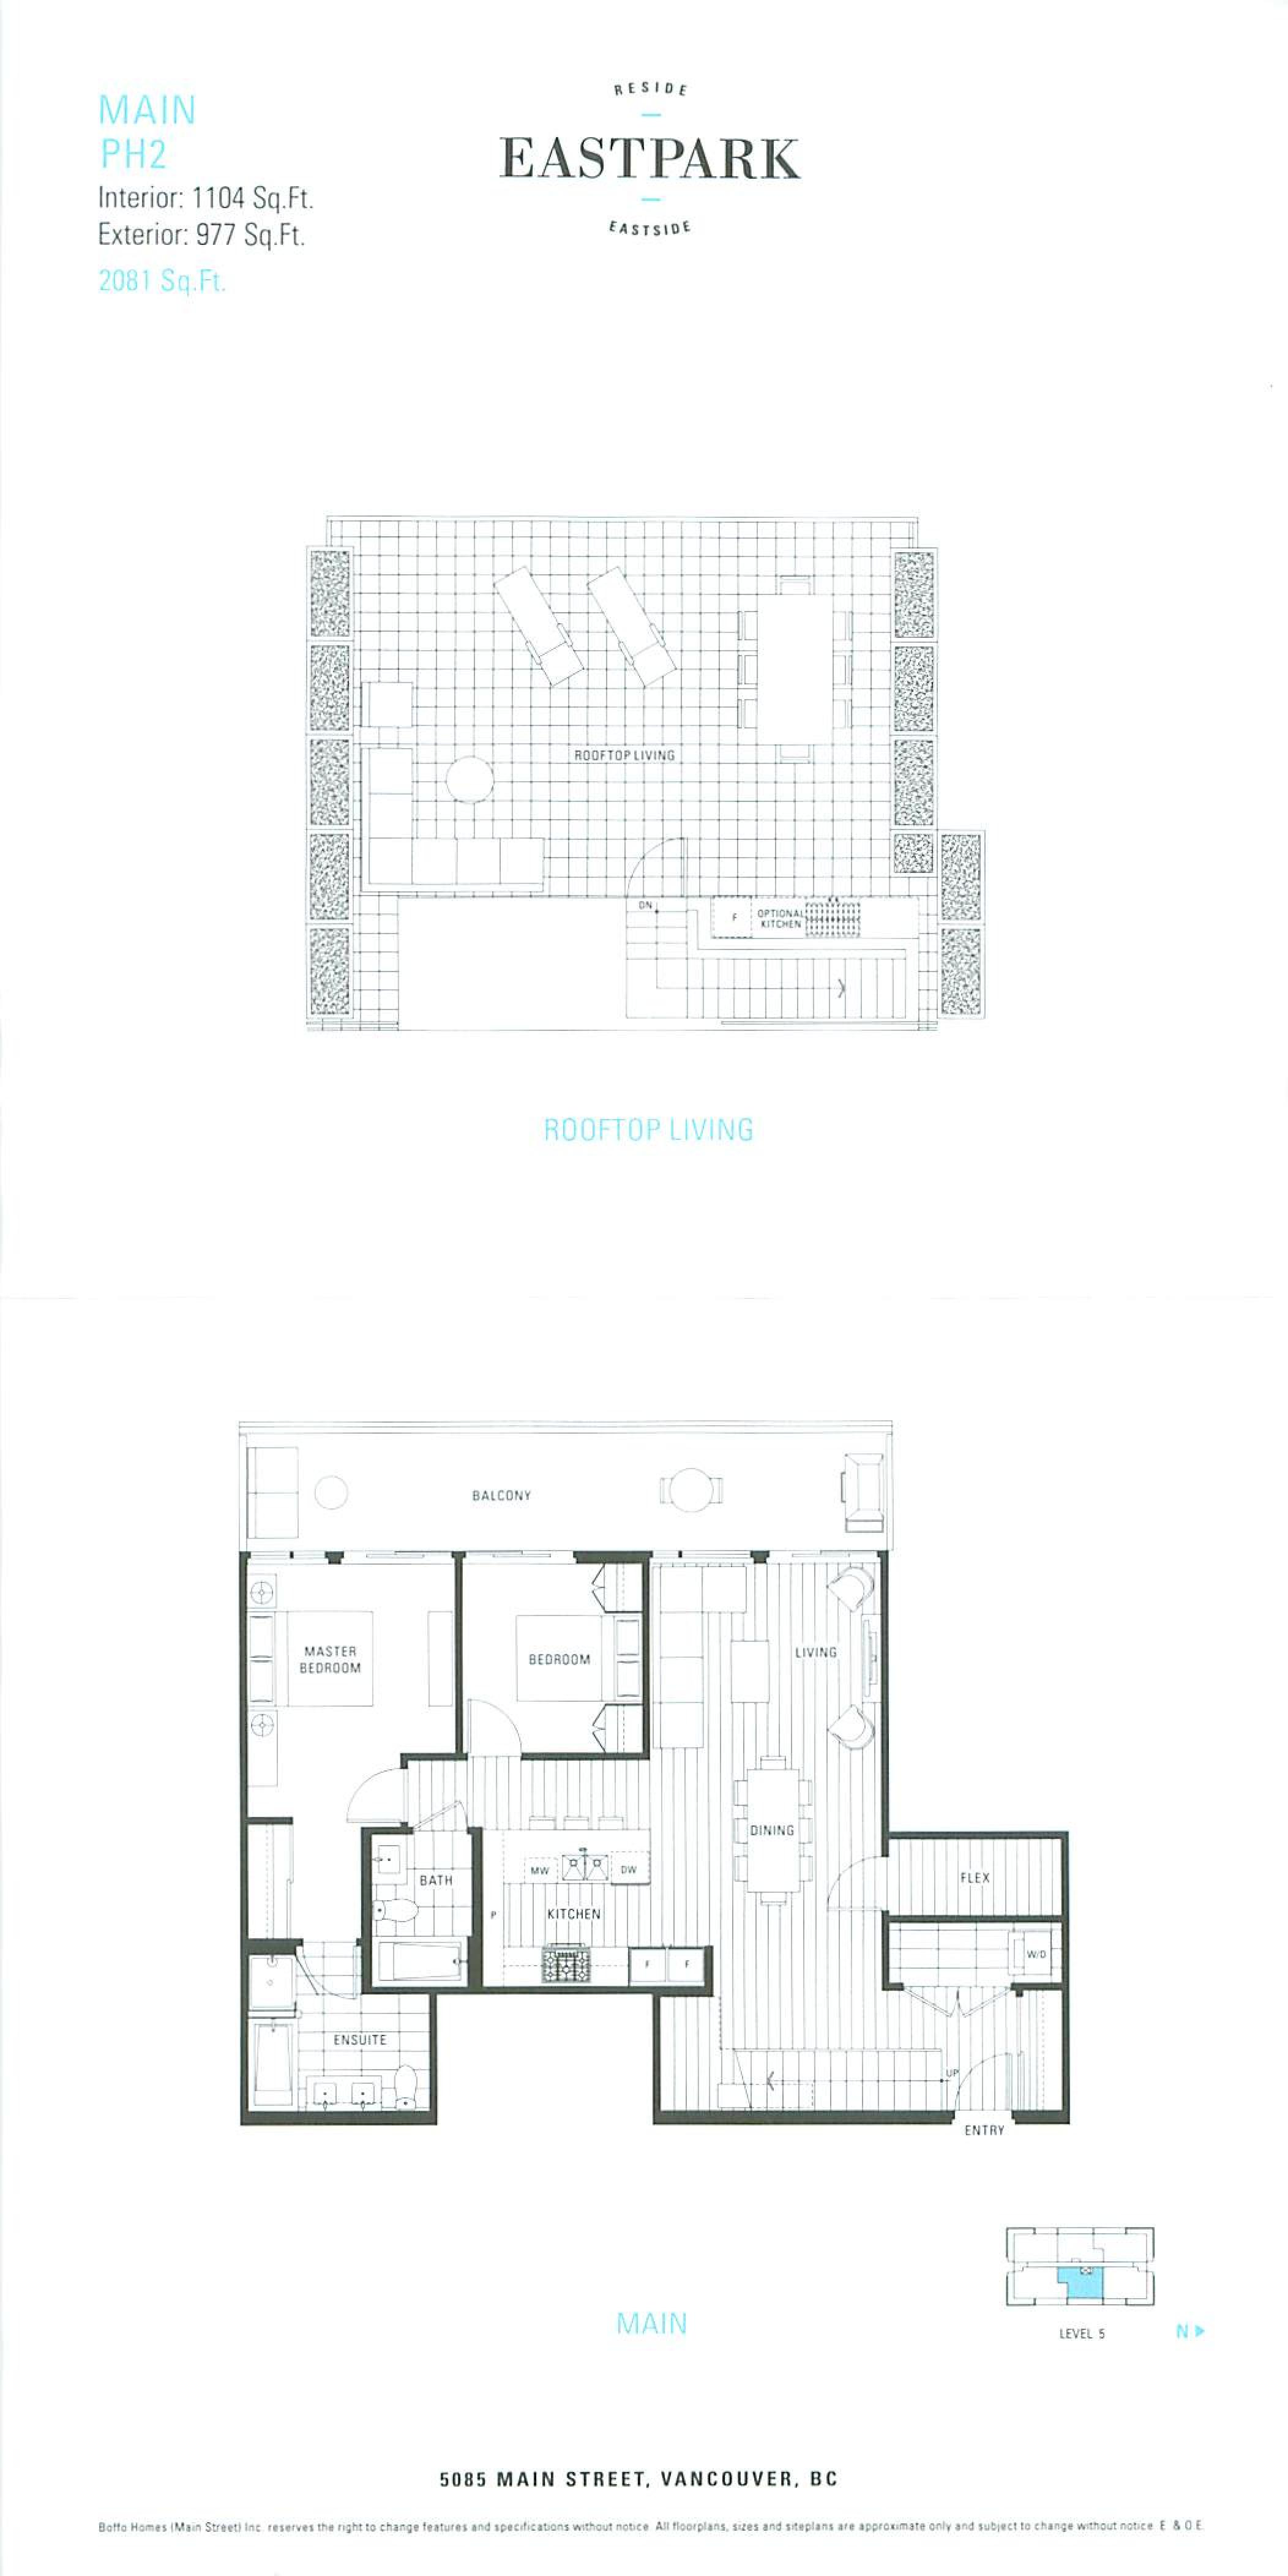 EastPark Main Larger Floor Plans Mike Stewart-page-001